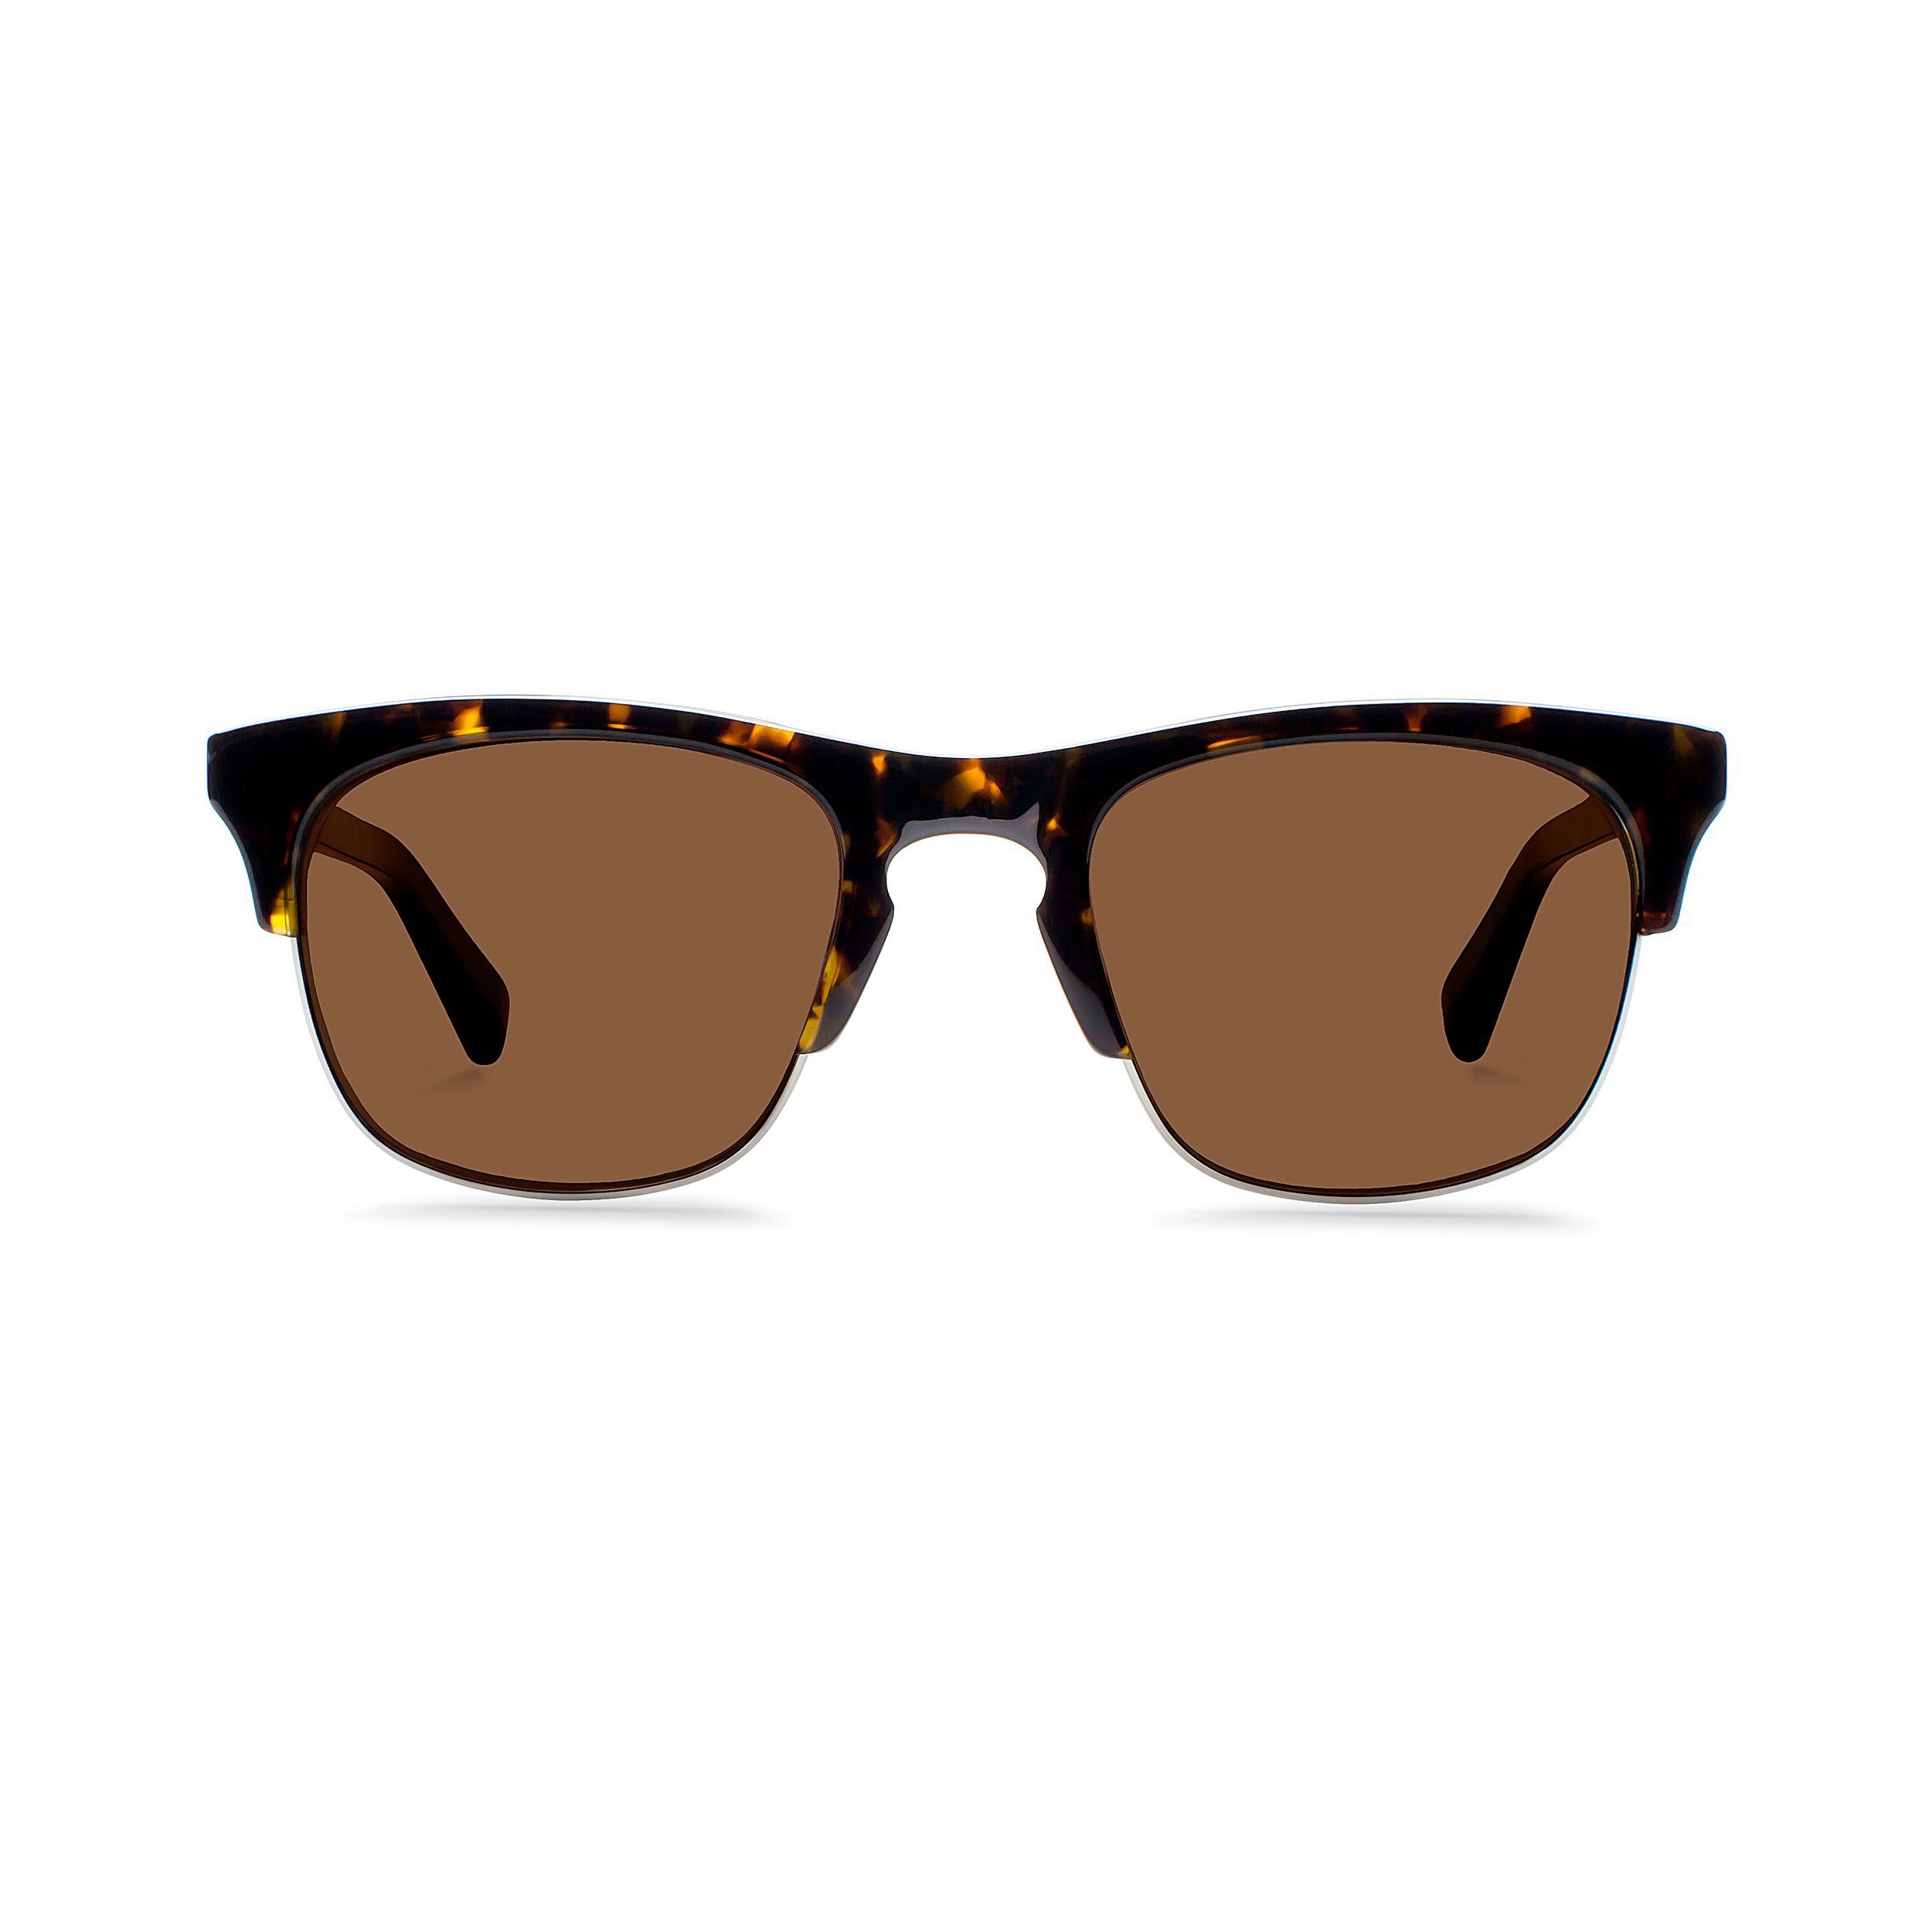 WARBY PARKER Ellison in Whiskey Tortoise